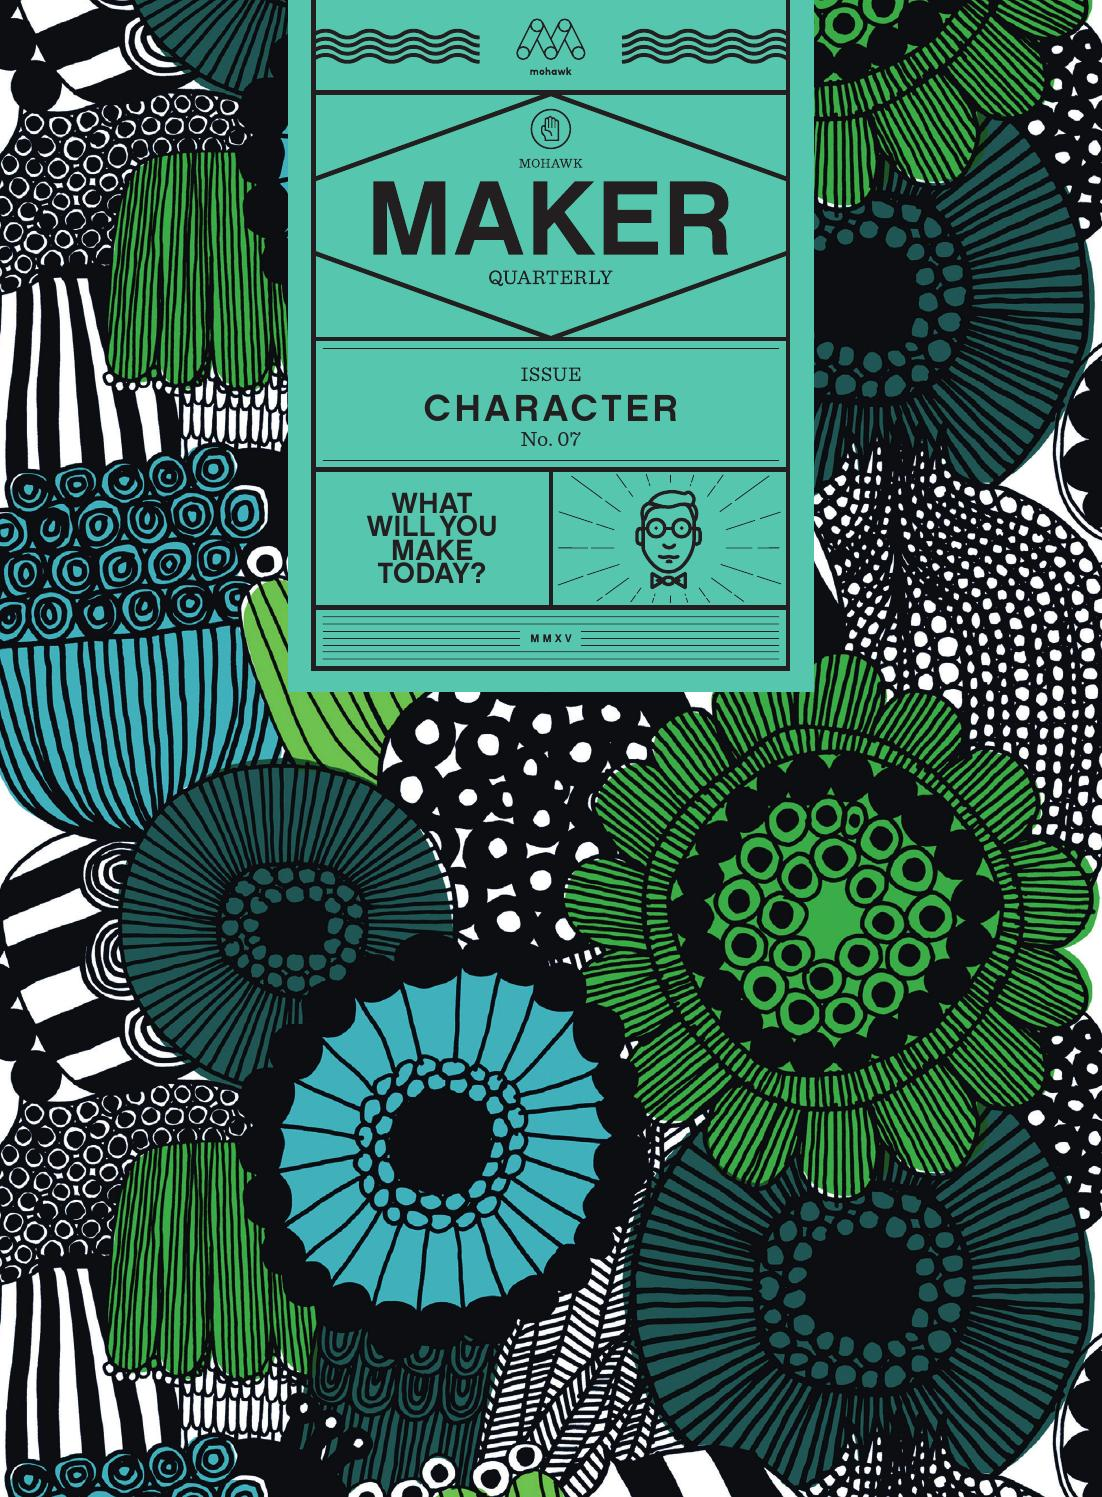 Mohawk Maker Quarterly Issue #7 | Character